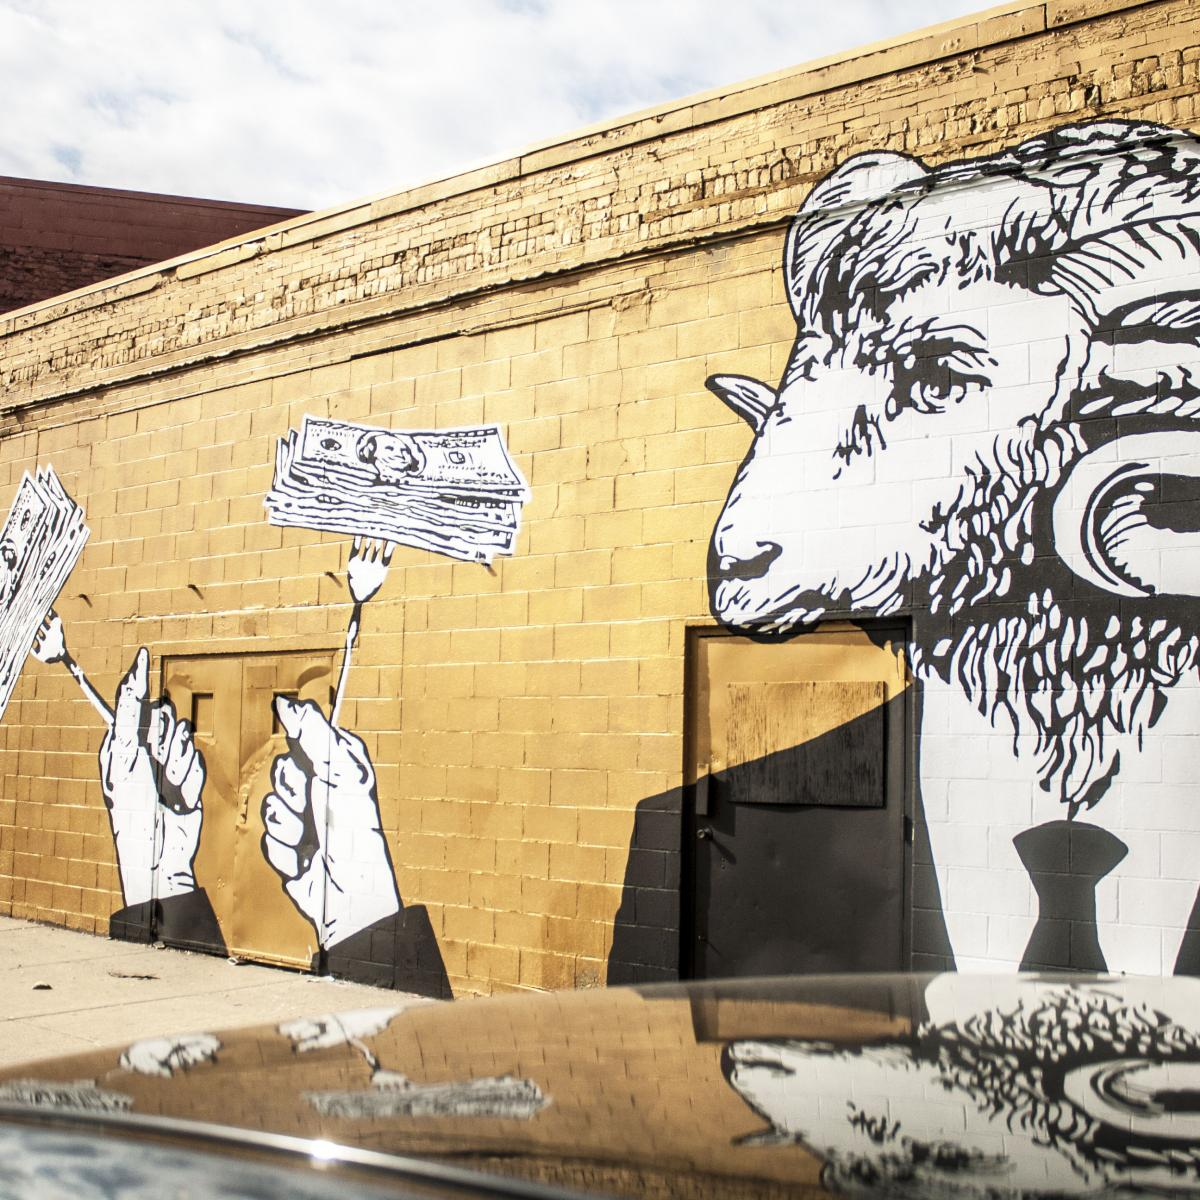 Mural of two goat people wearing black and white suit and tie holding forks spearing stack of dollar bills.